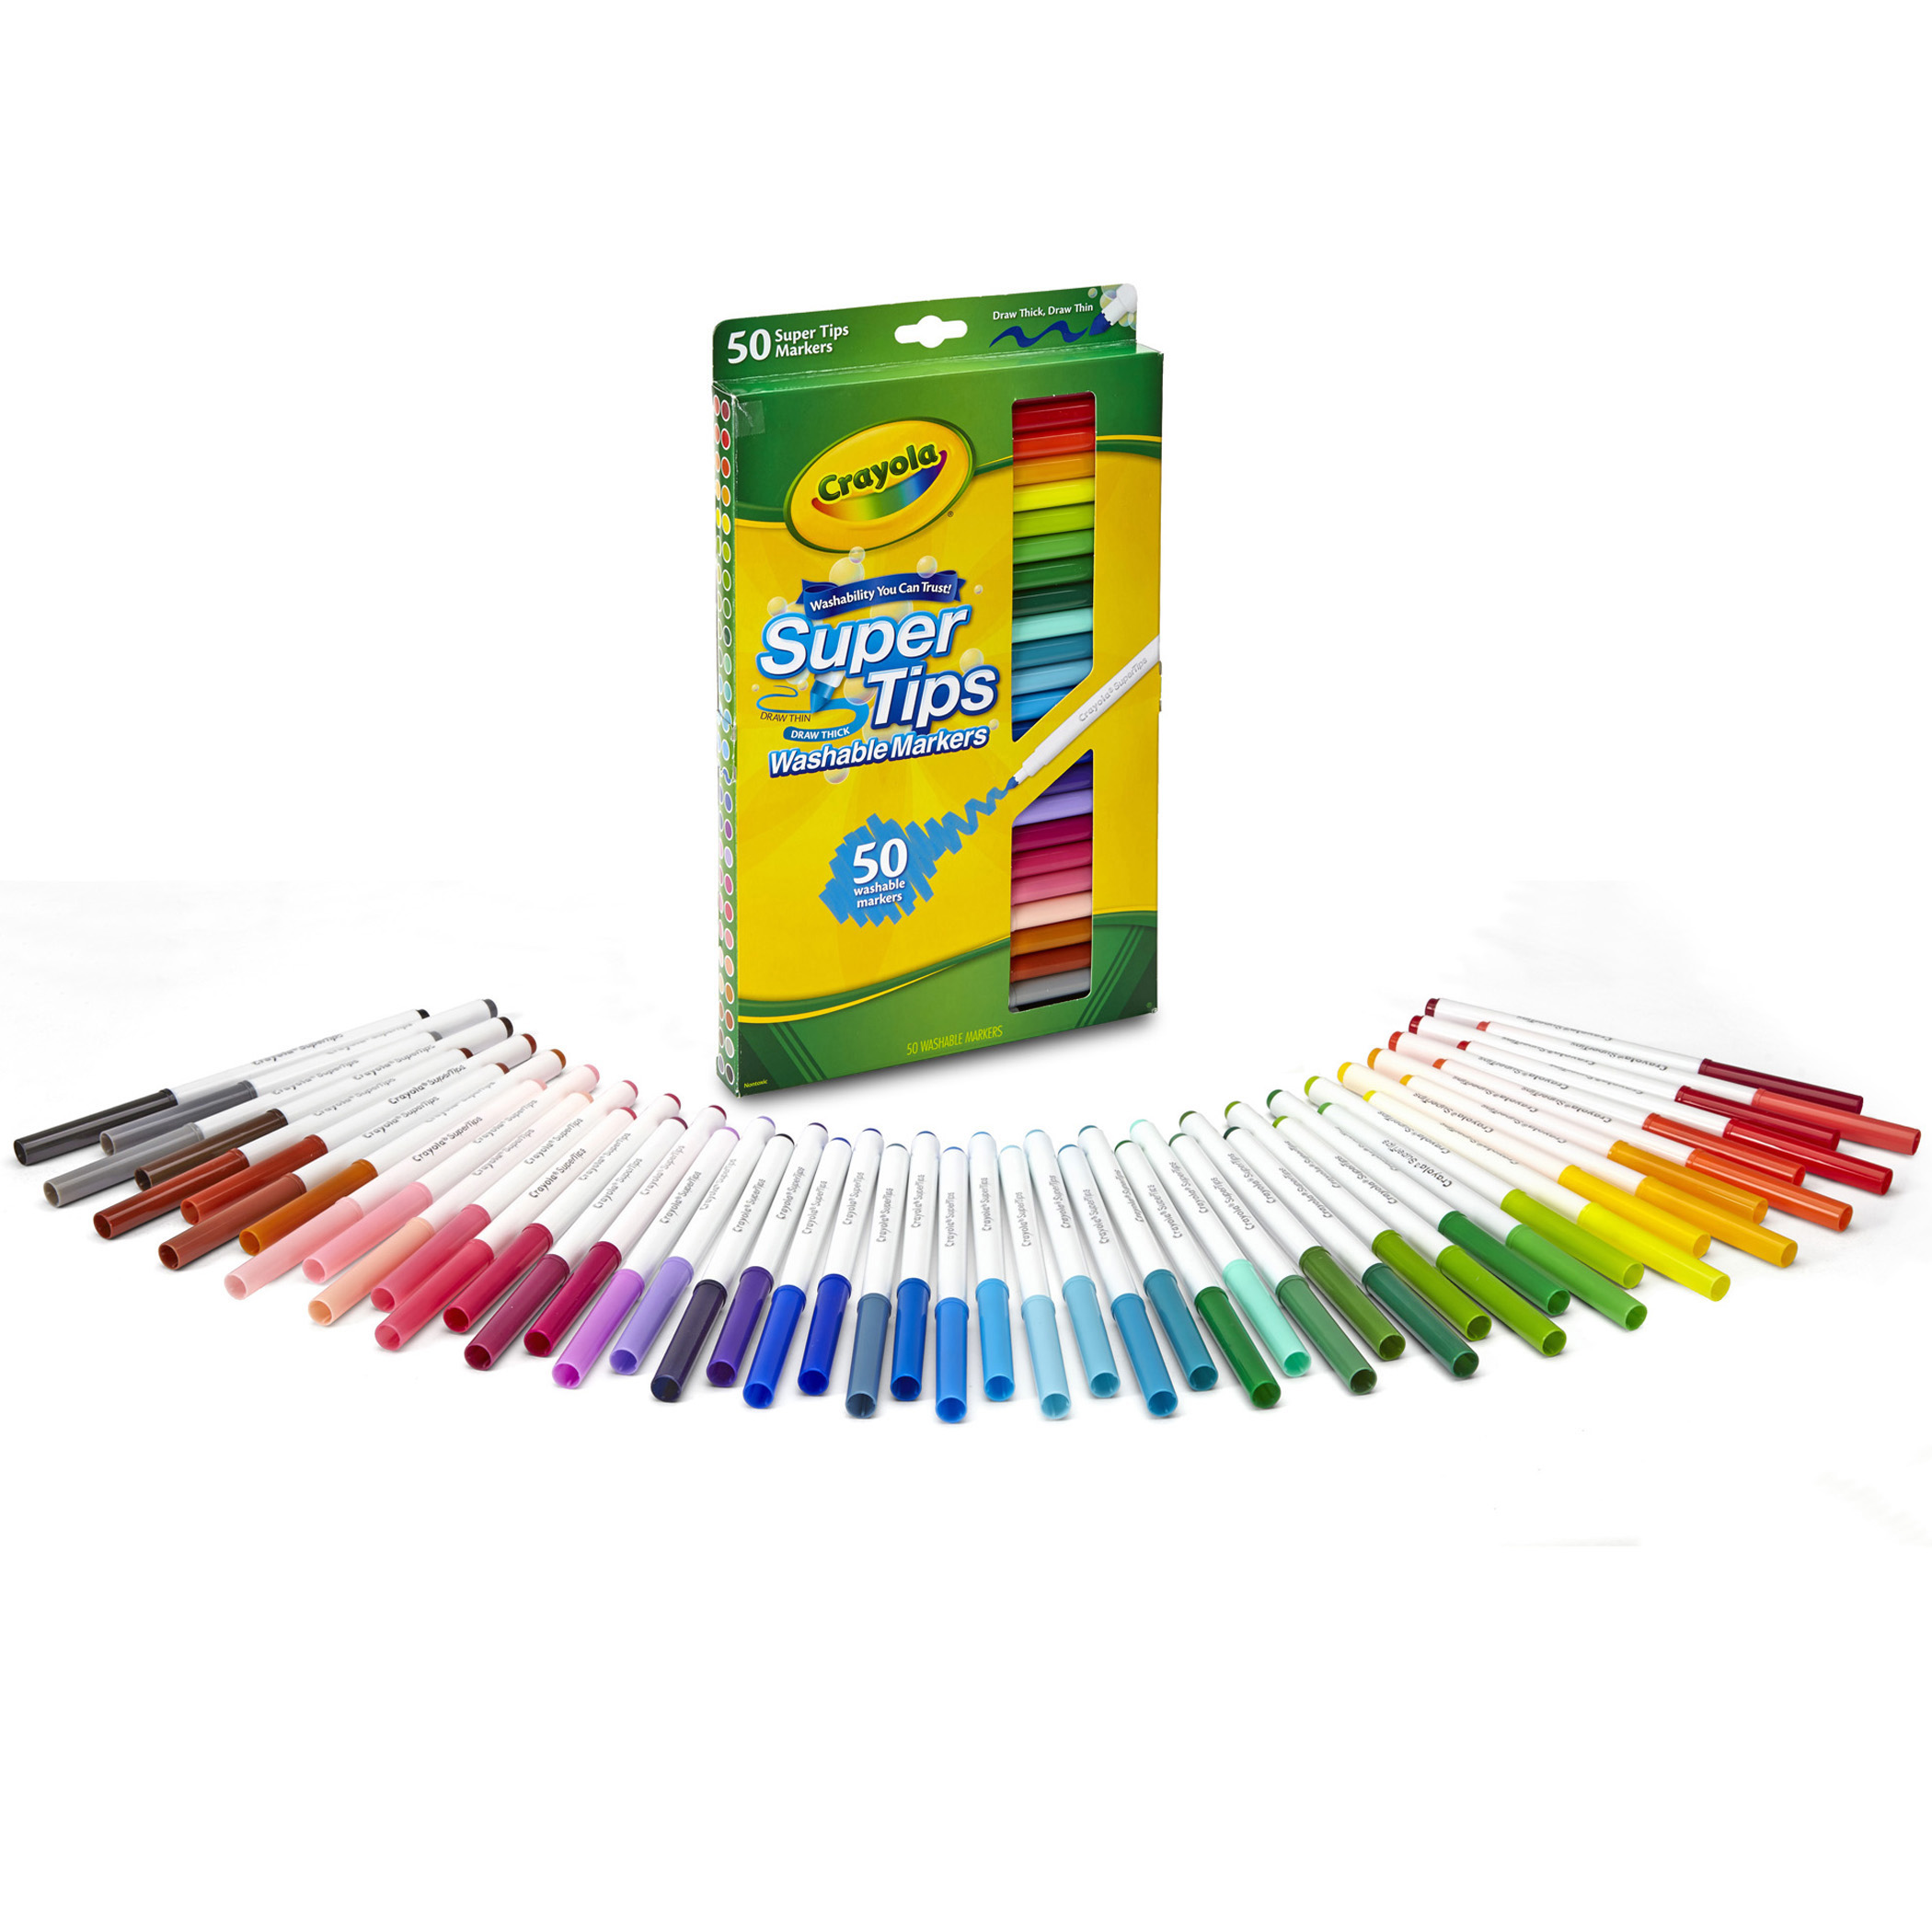 Crayola® Super Tips Washable Markers, Pack of 50